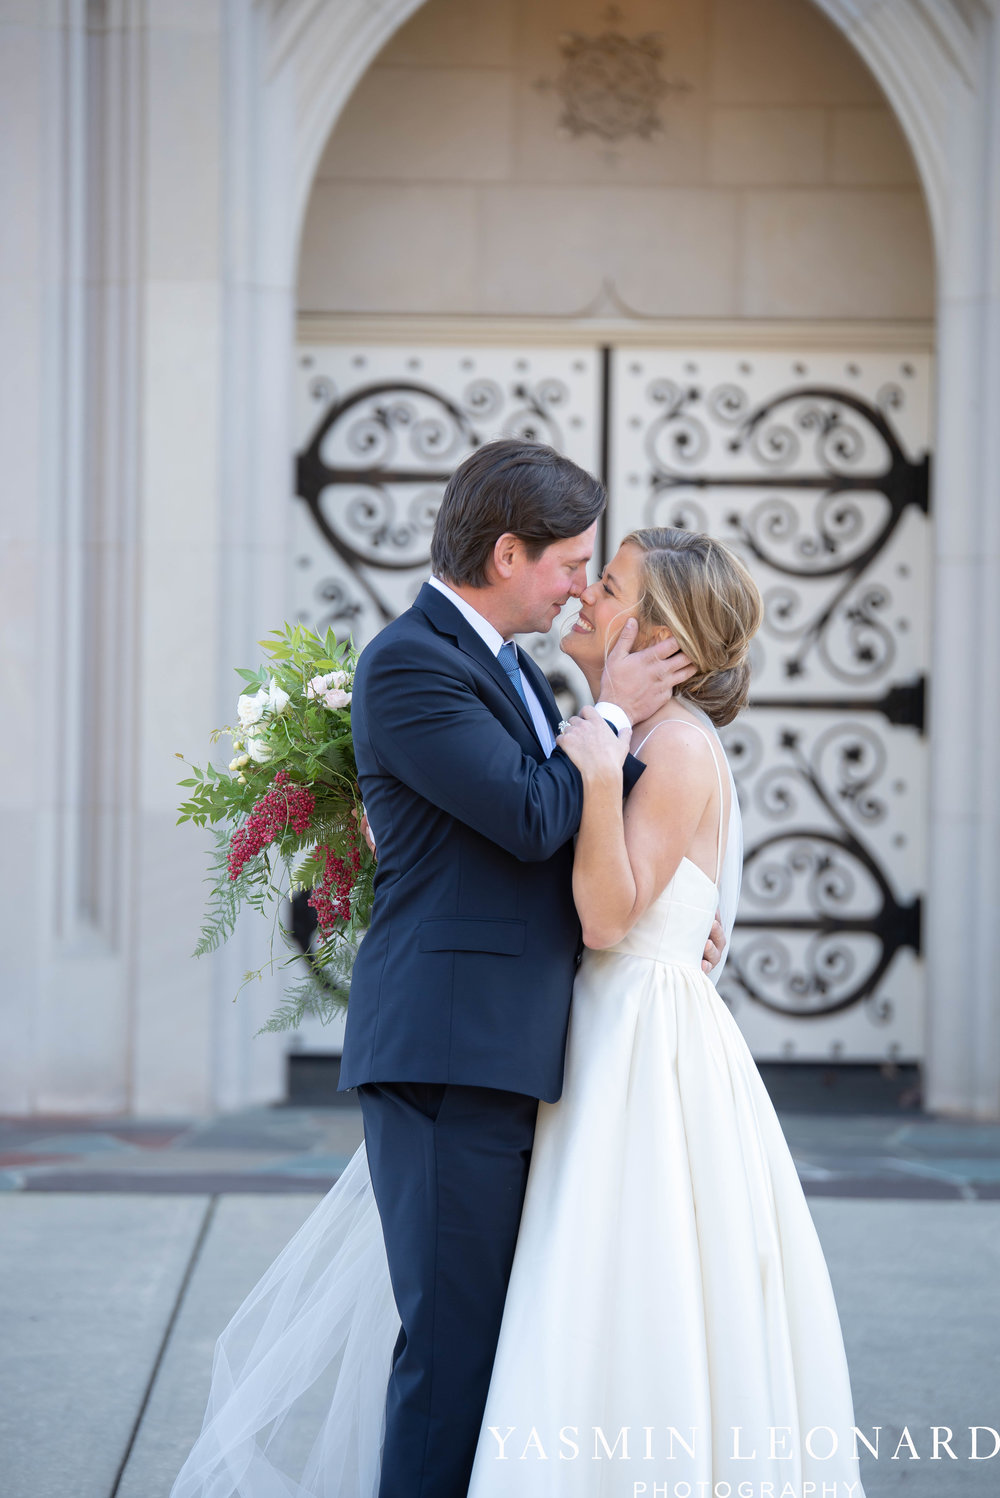 Wesley Memorial United Methodist Church - EmeryWood - High Point Weddings - High Point Wedding Photographer - NC Wedding Photographer - Yasmin Leonard Photography-36.jpg